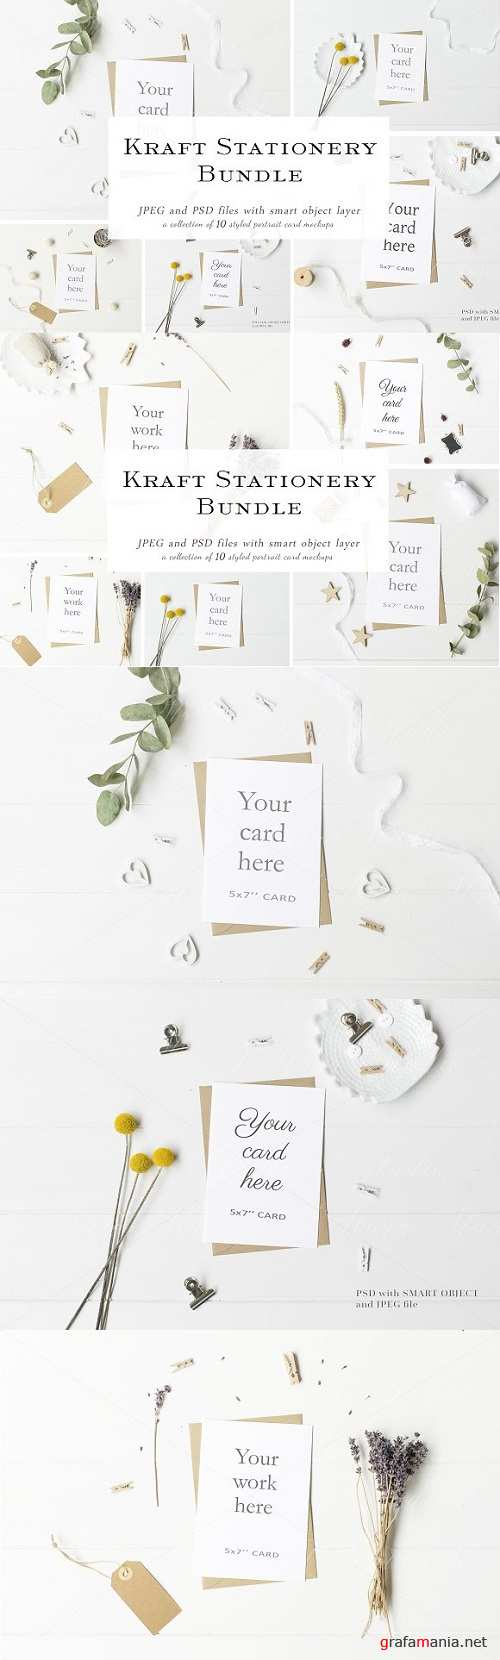 Stationery Mock Up Bundle 2177190